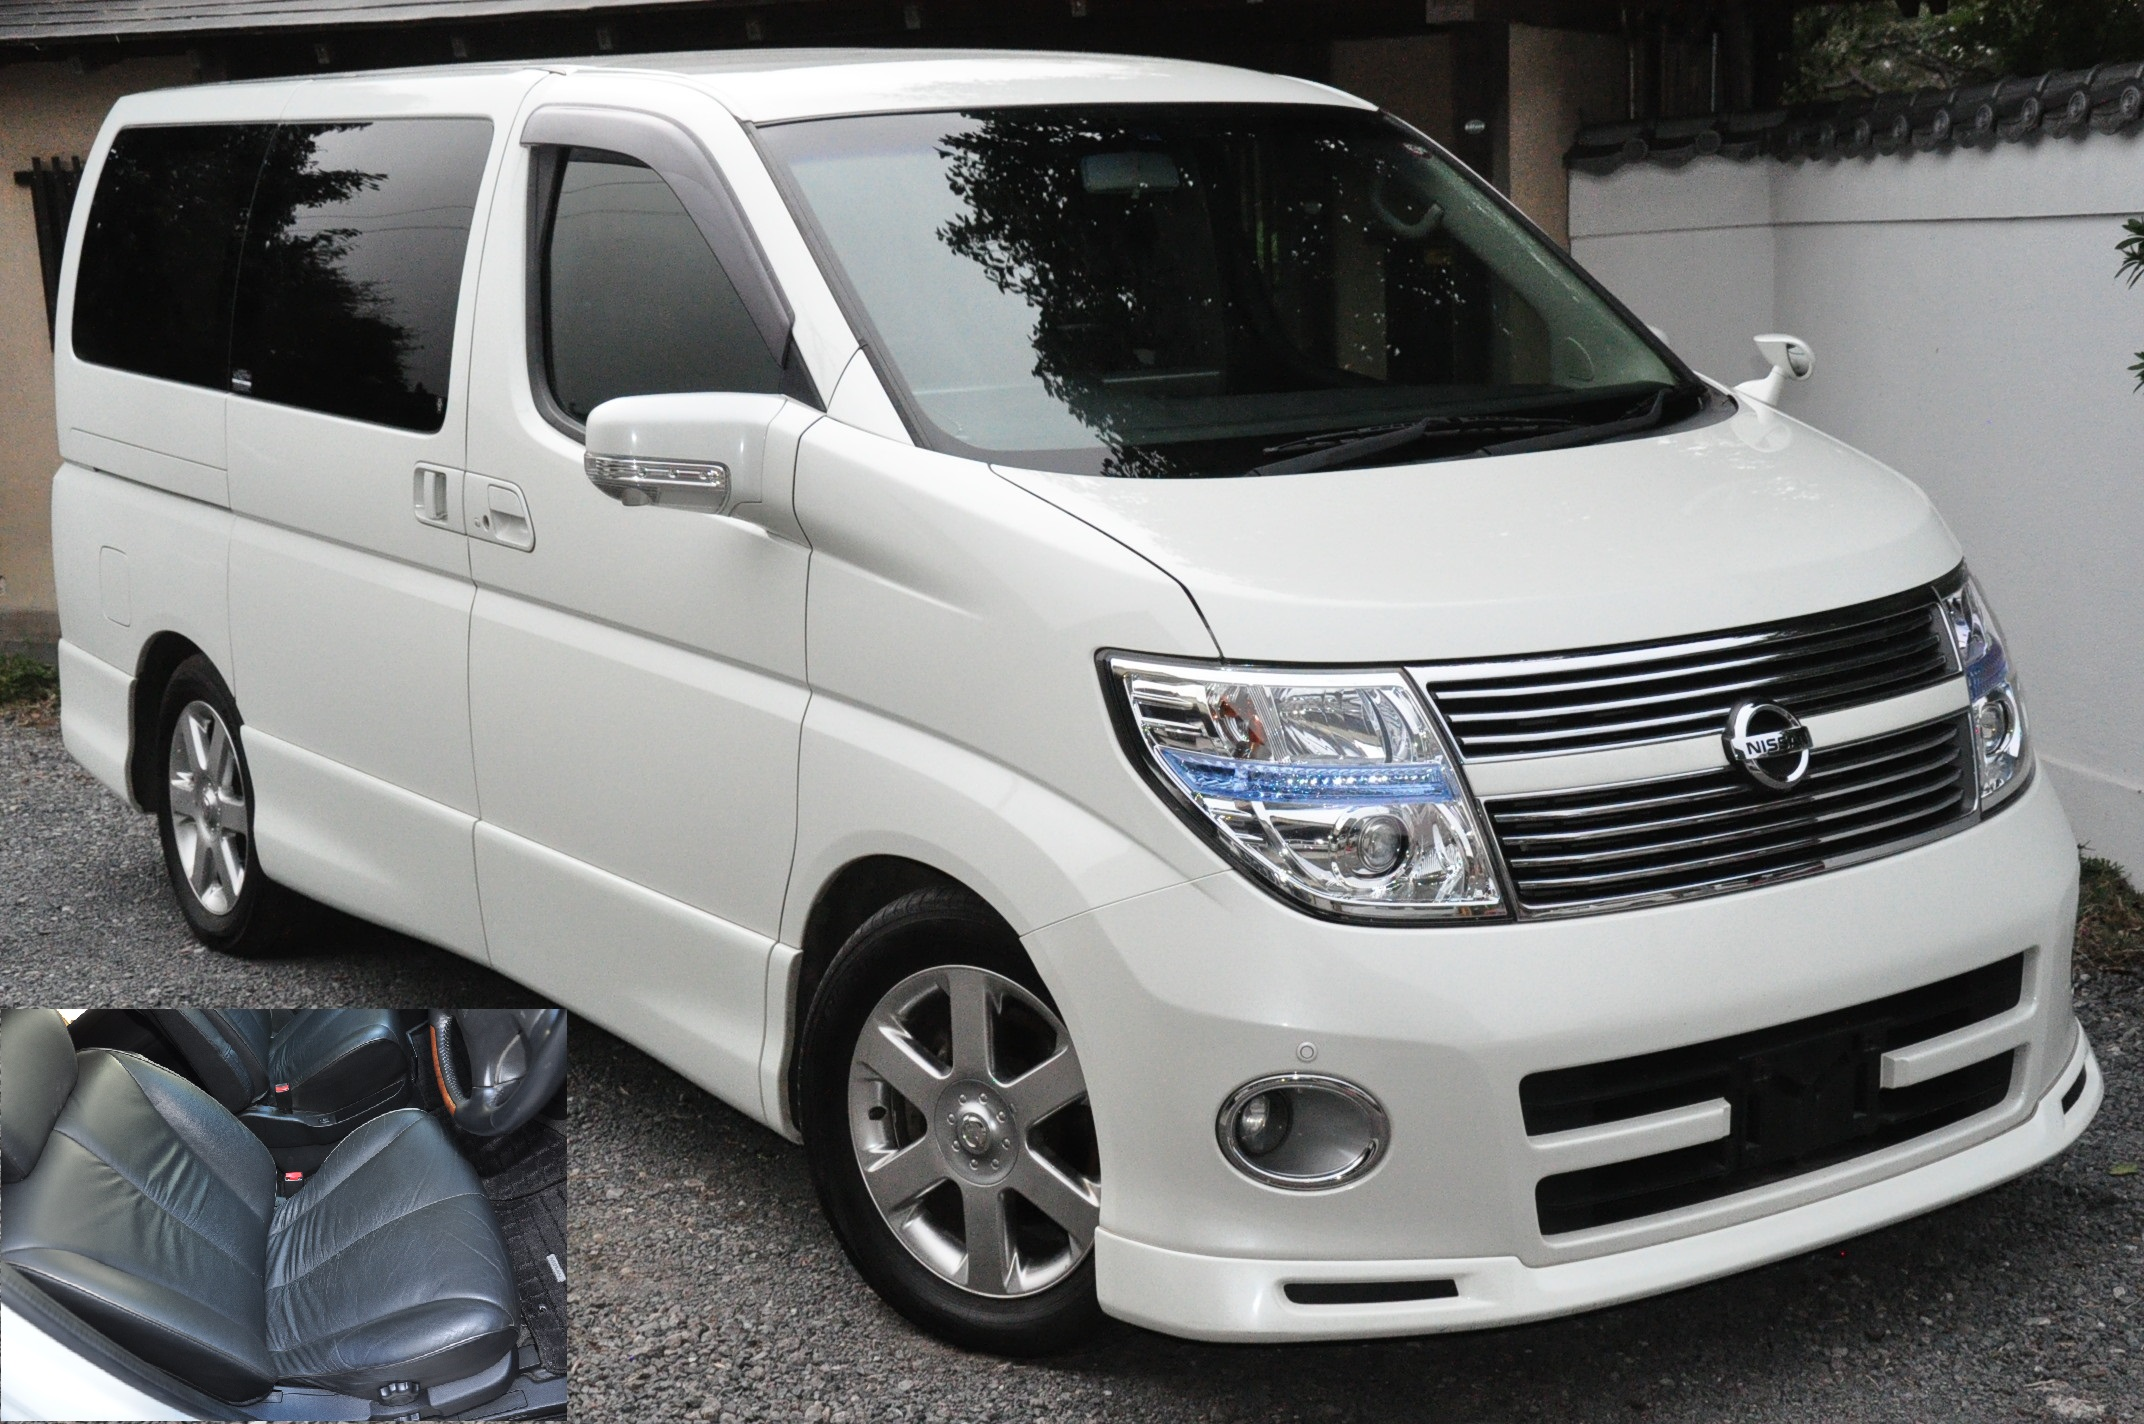 2009 (March) Nissan Elgrand (NE51) 4WD Highway Star Black Leather Urban Selection 3500cc auto